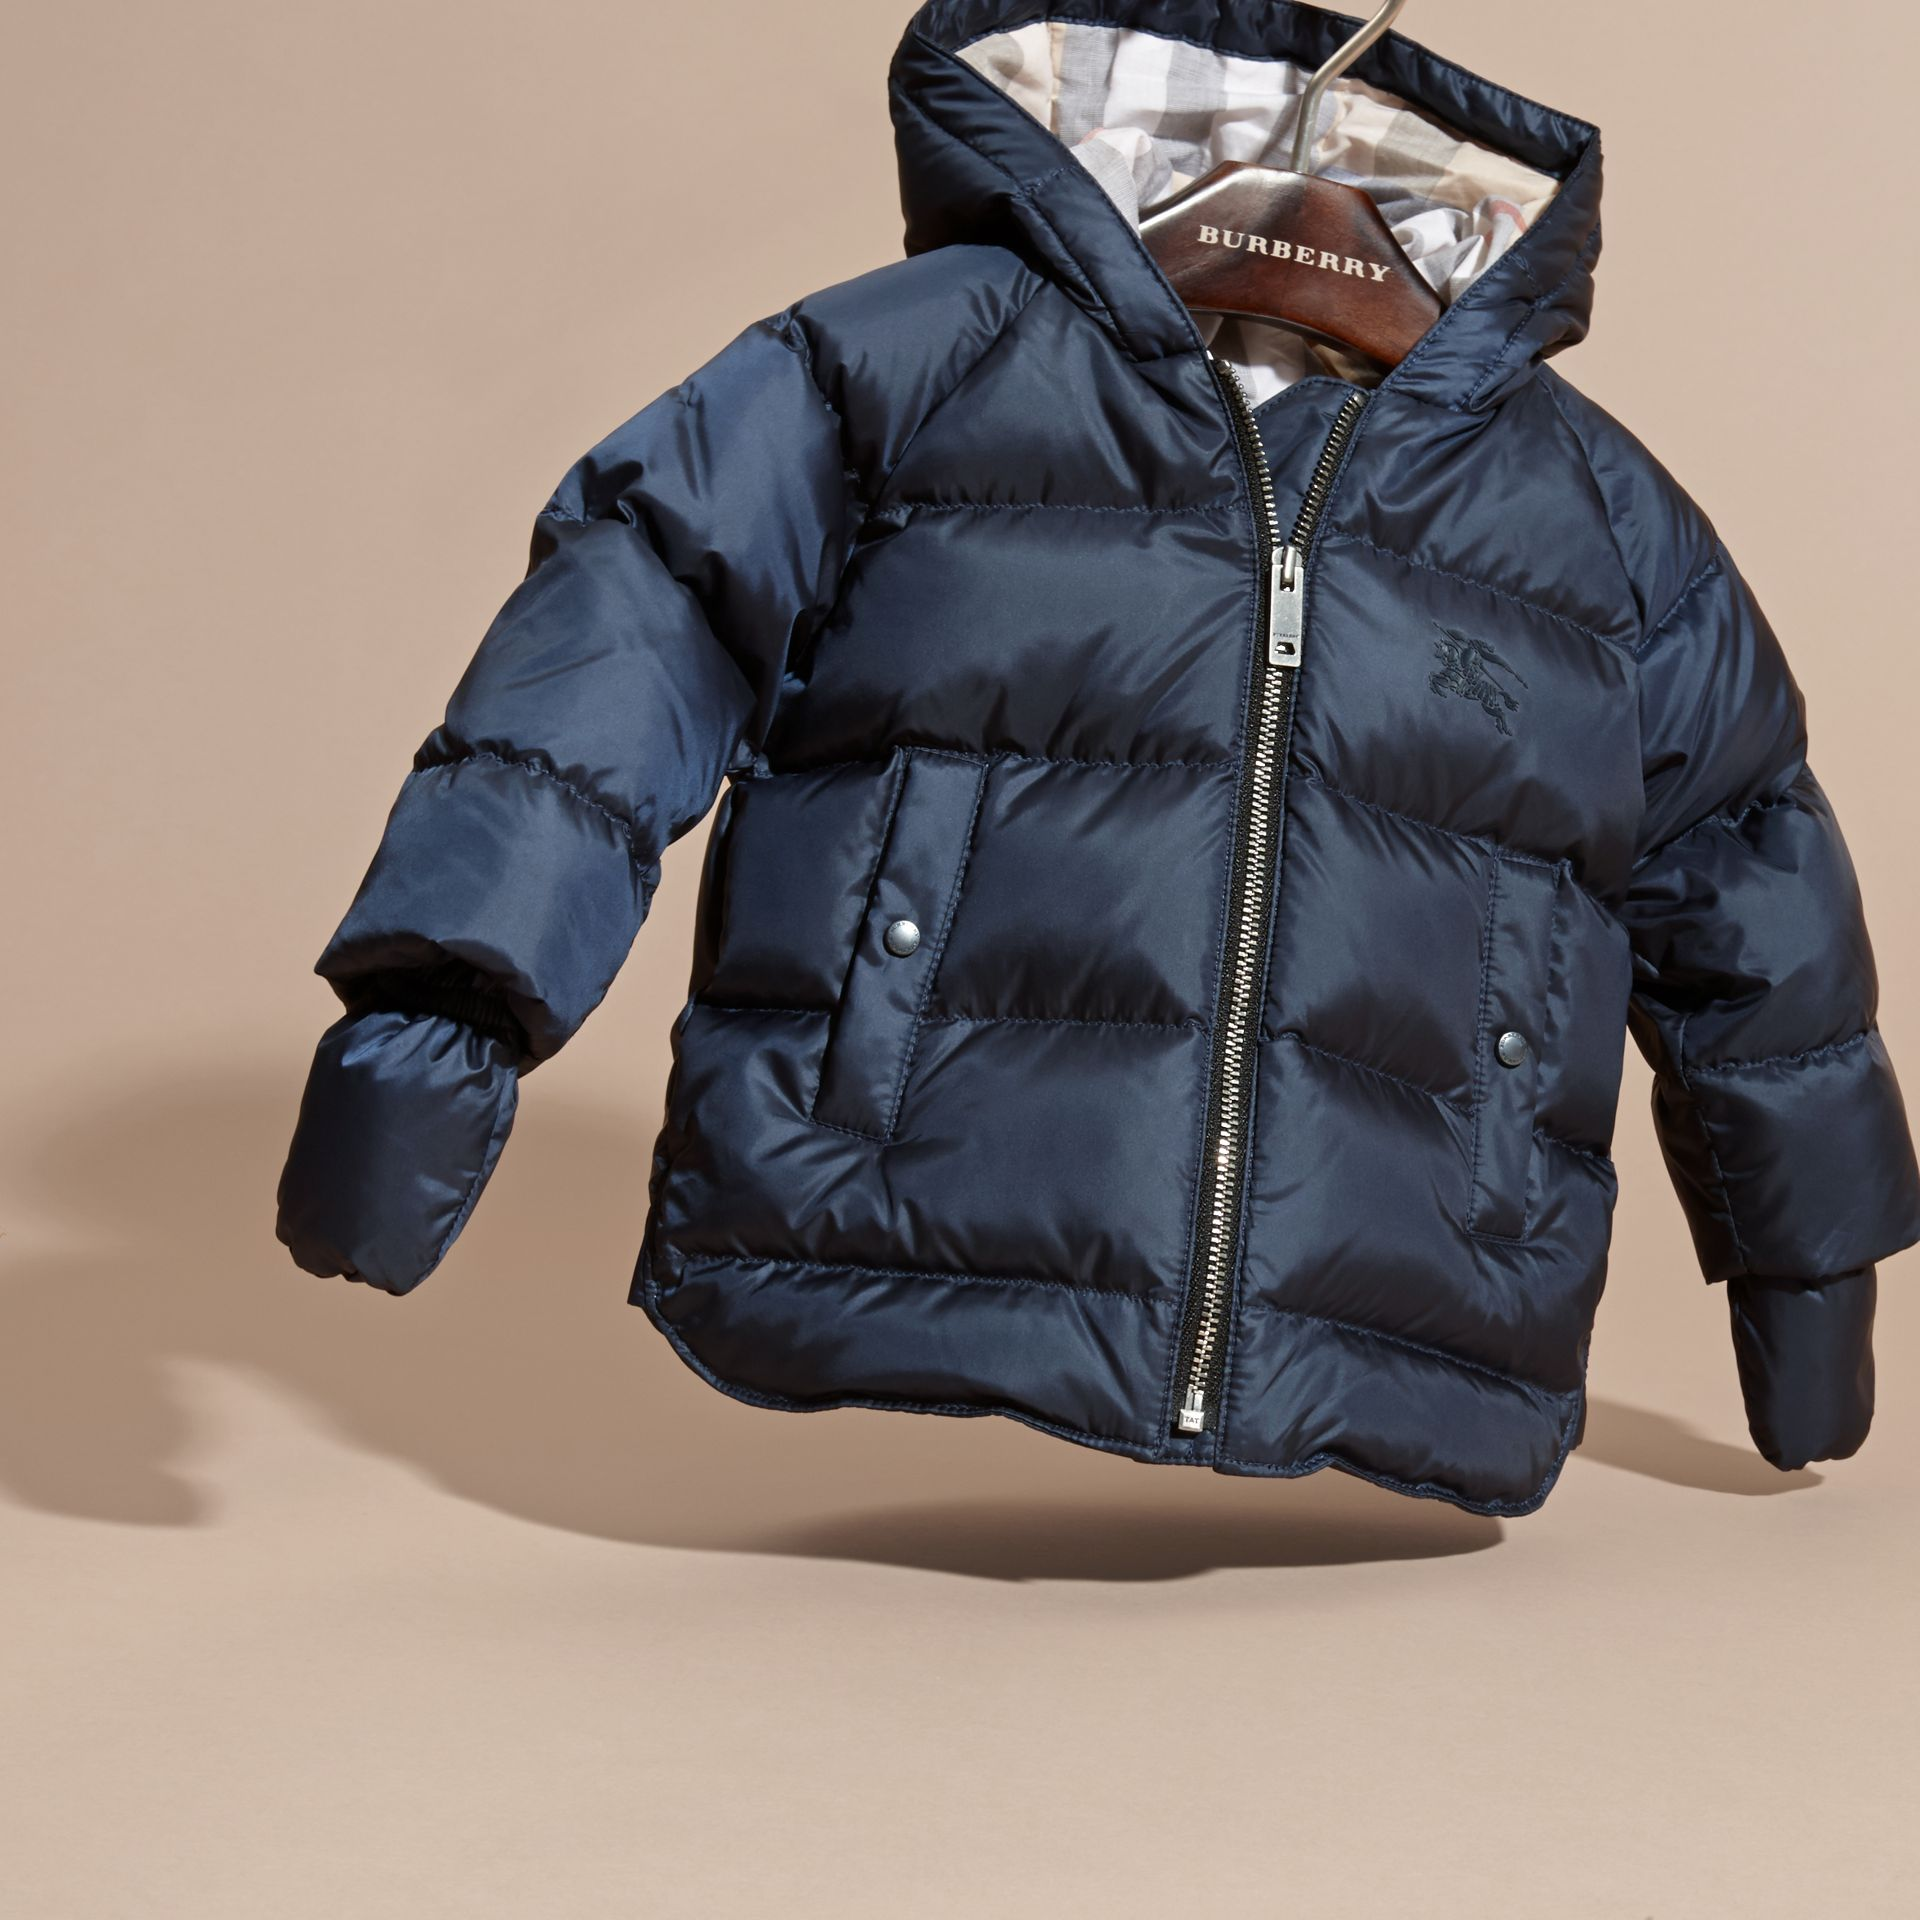 Hooded Down-filled Puffer Jacket with Mittens in Navy | Burberry - gallery image 3